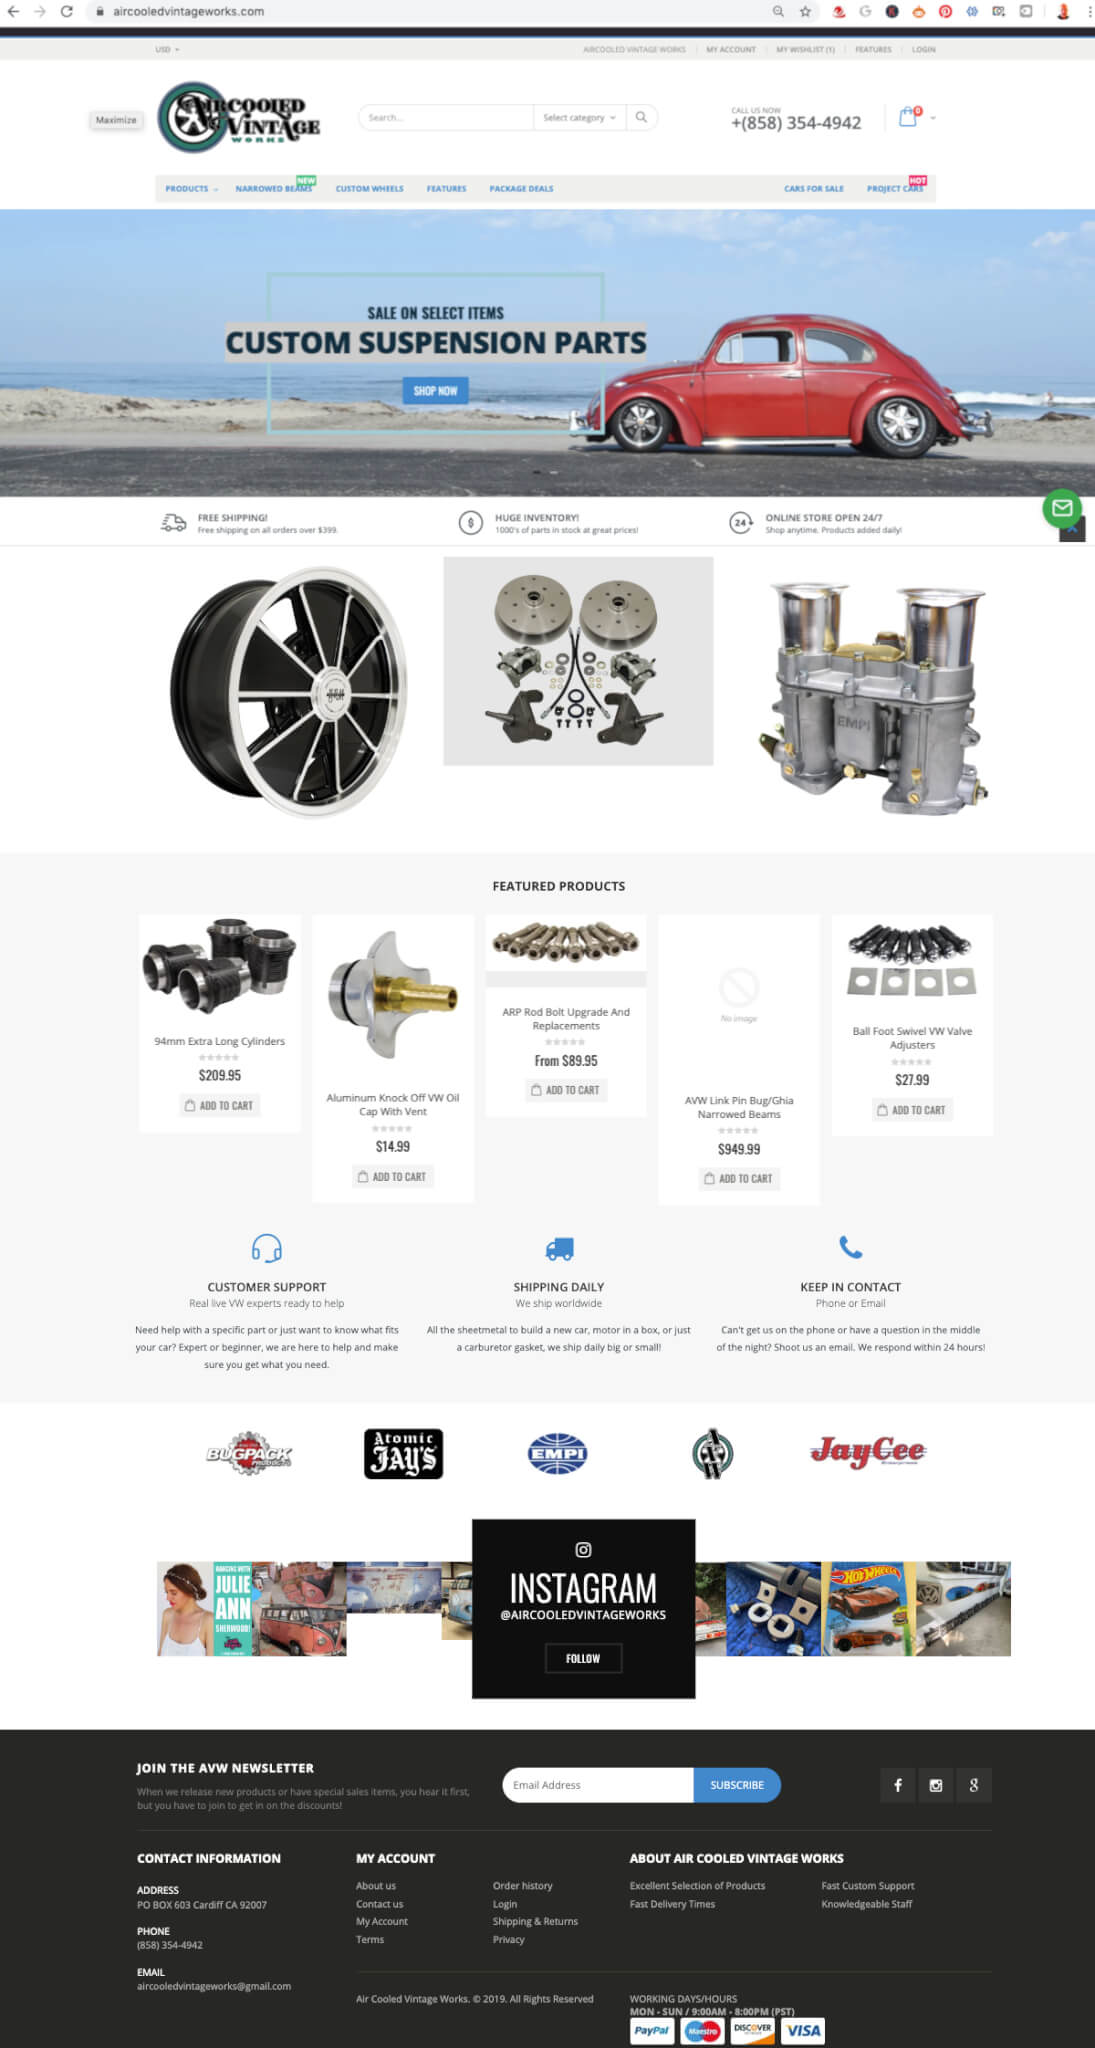 Web Development Company - Shopify Air Cooled Vintage Works Homepage